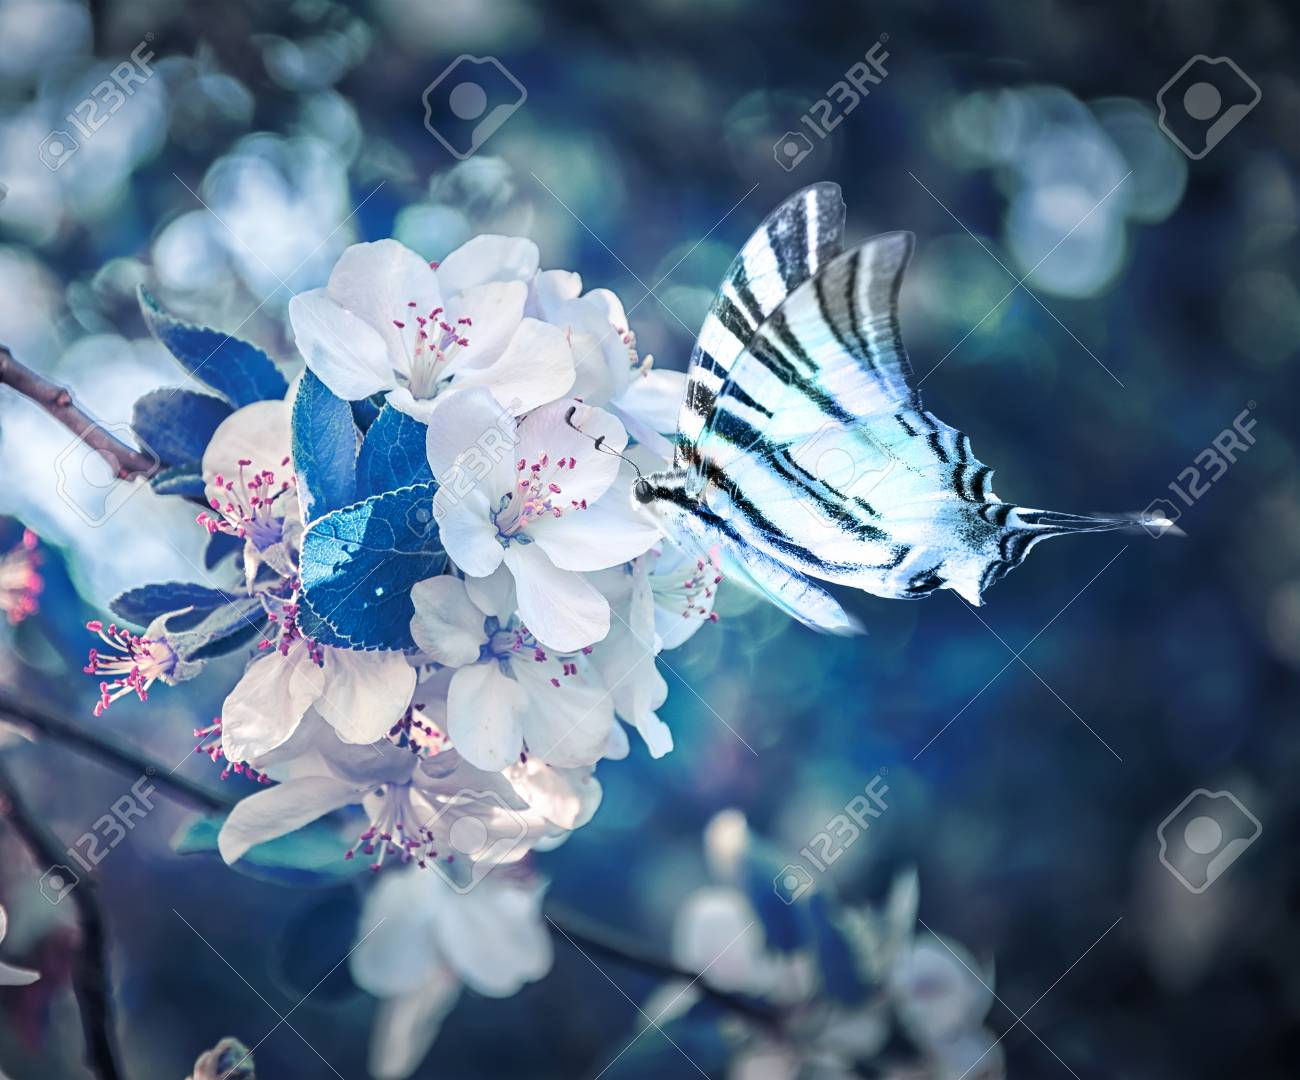 64790a409 Beautiful sakura flower cherry blossom and butterfly fluttering over  close-up. Greeting card background